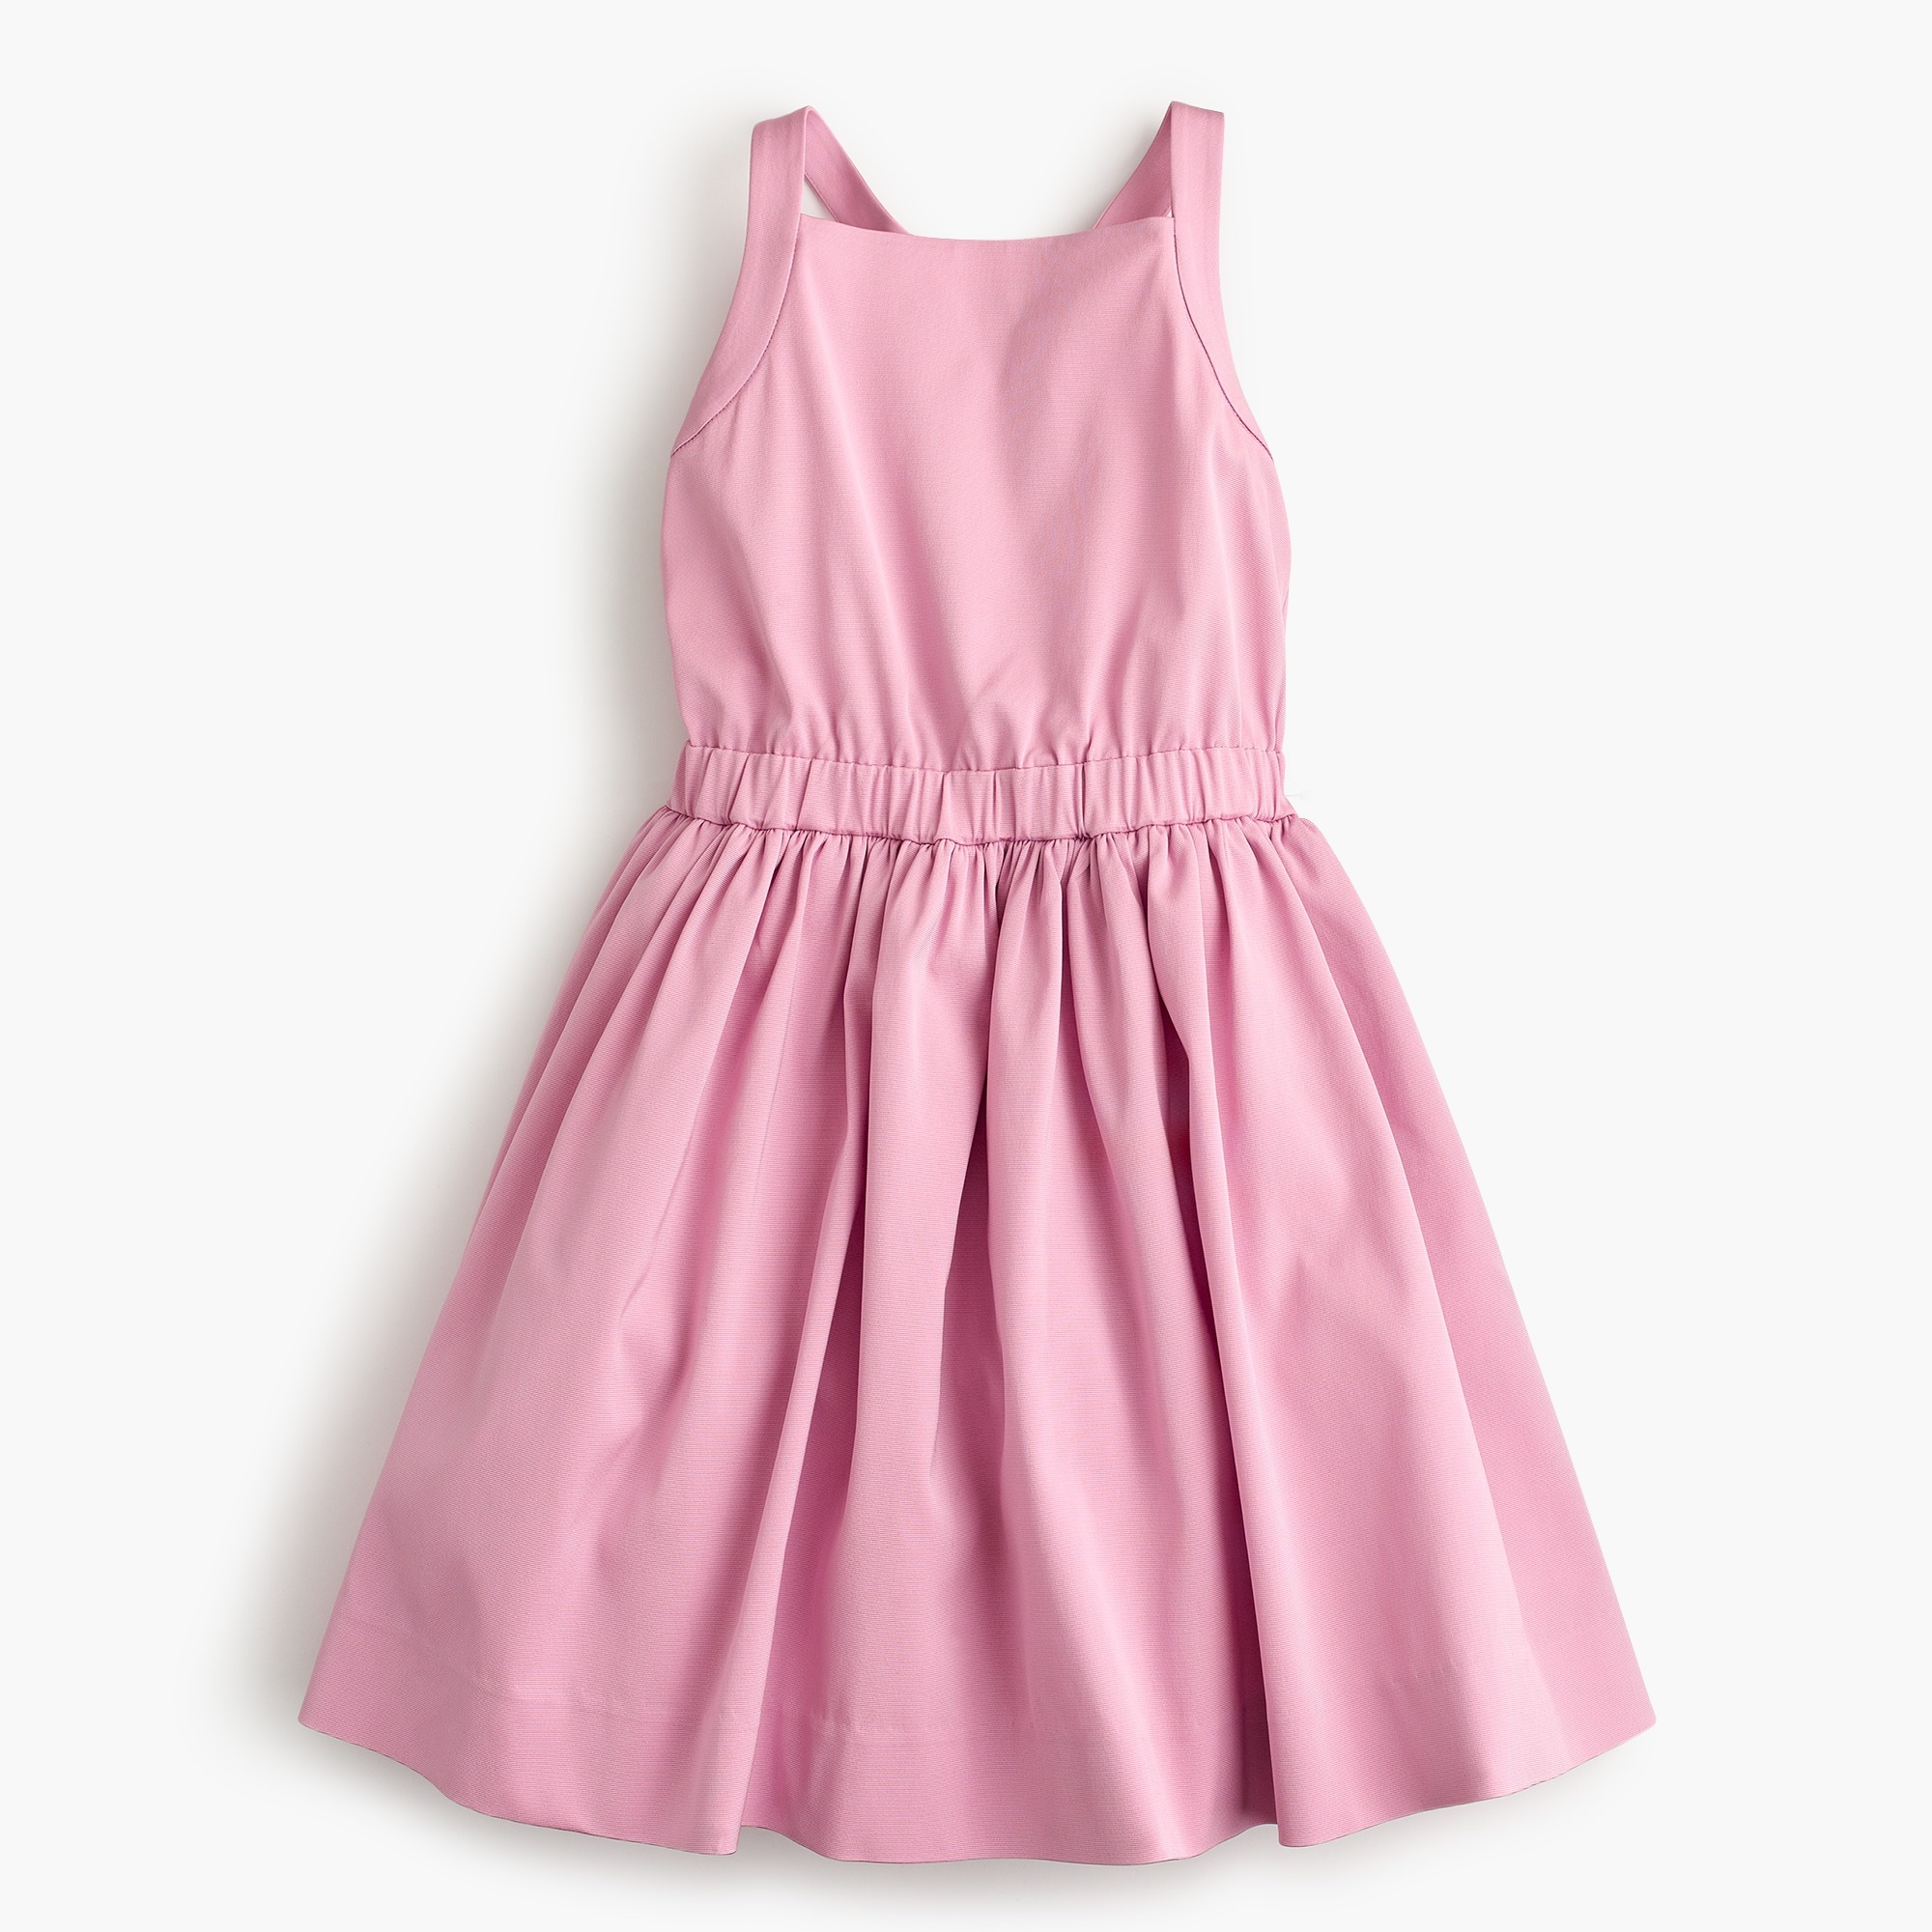 girls Girls' bow-back dress in stretch faille